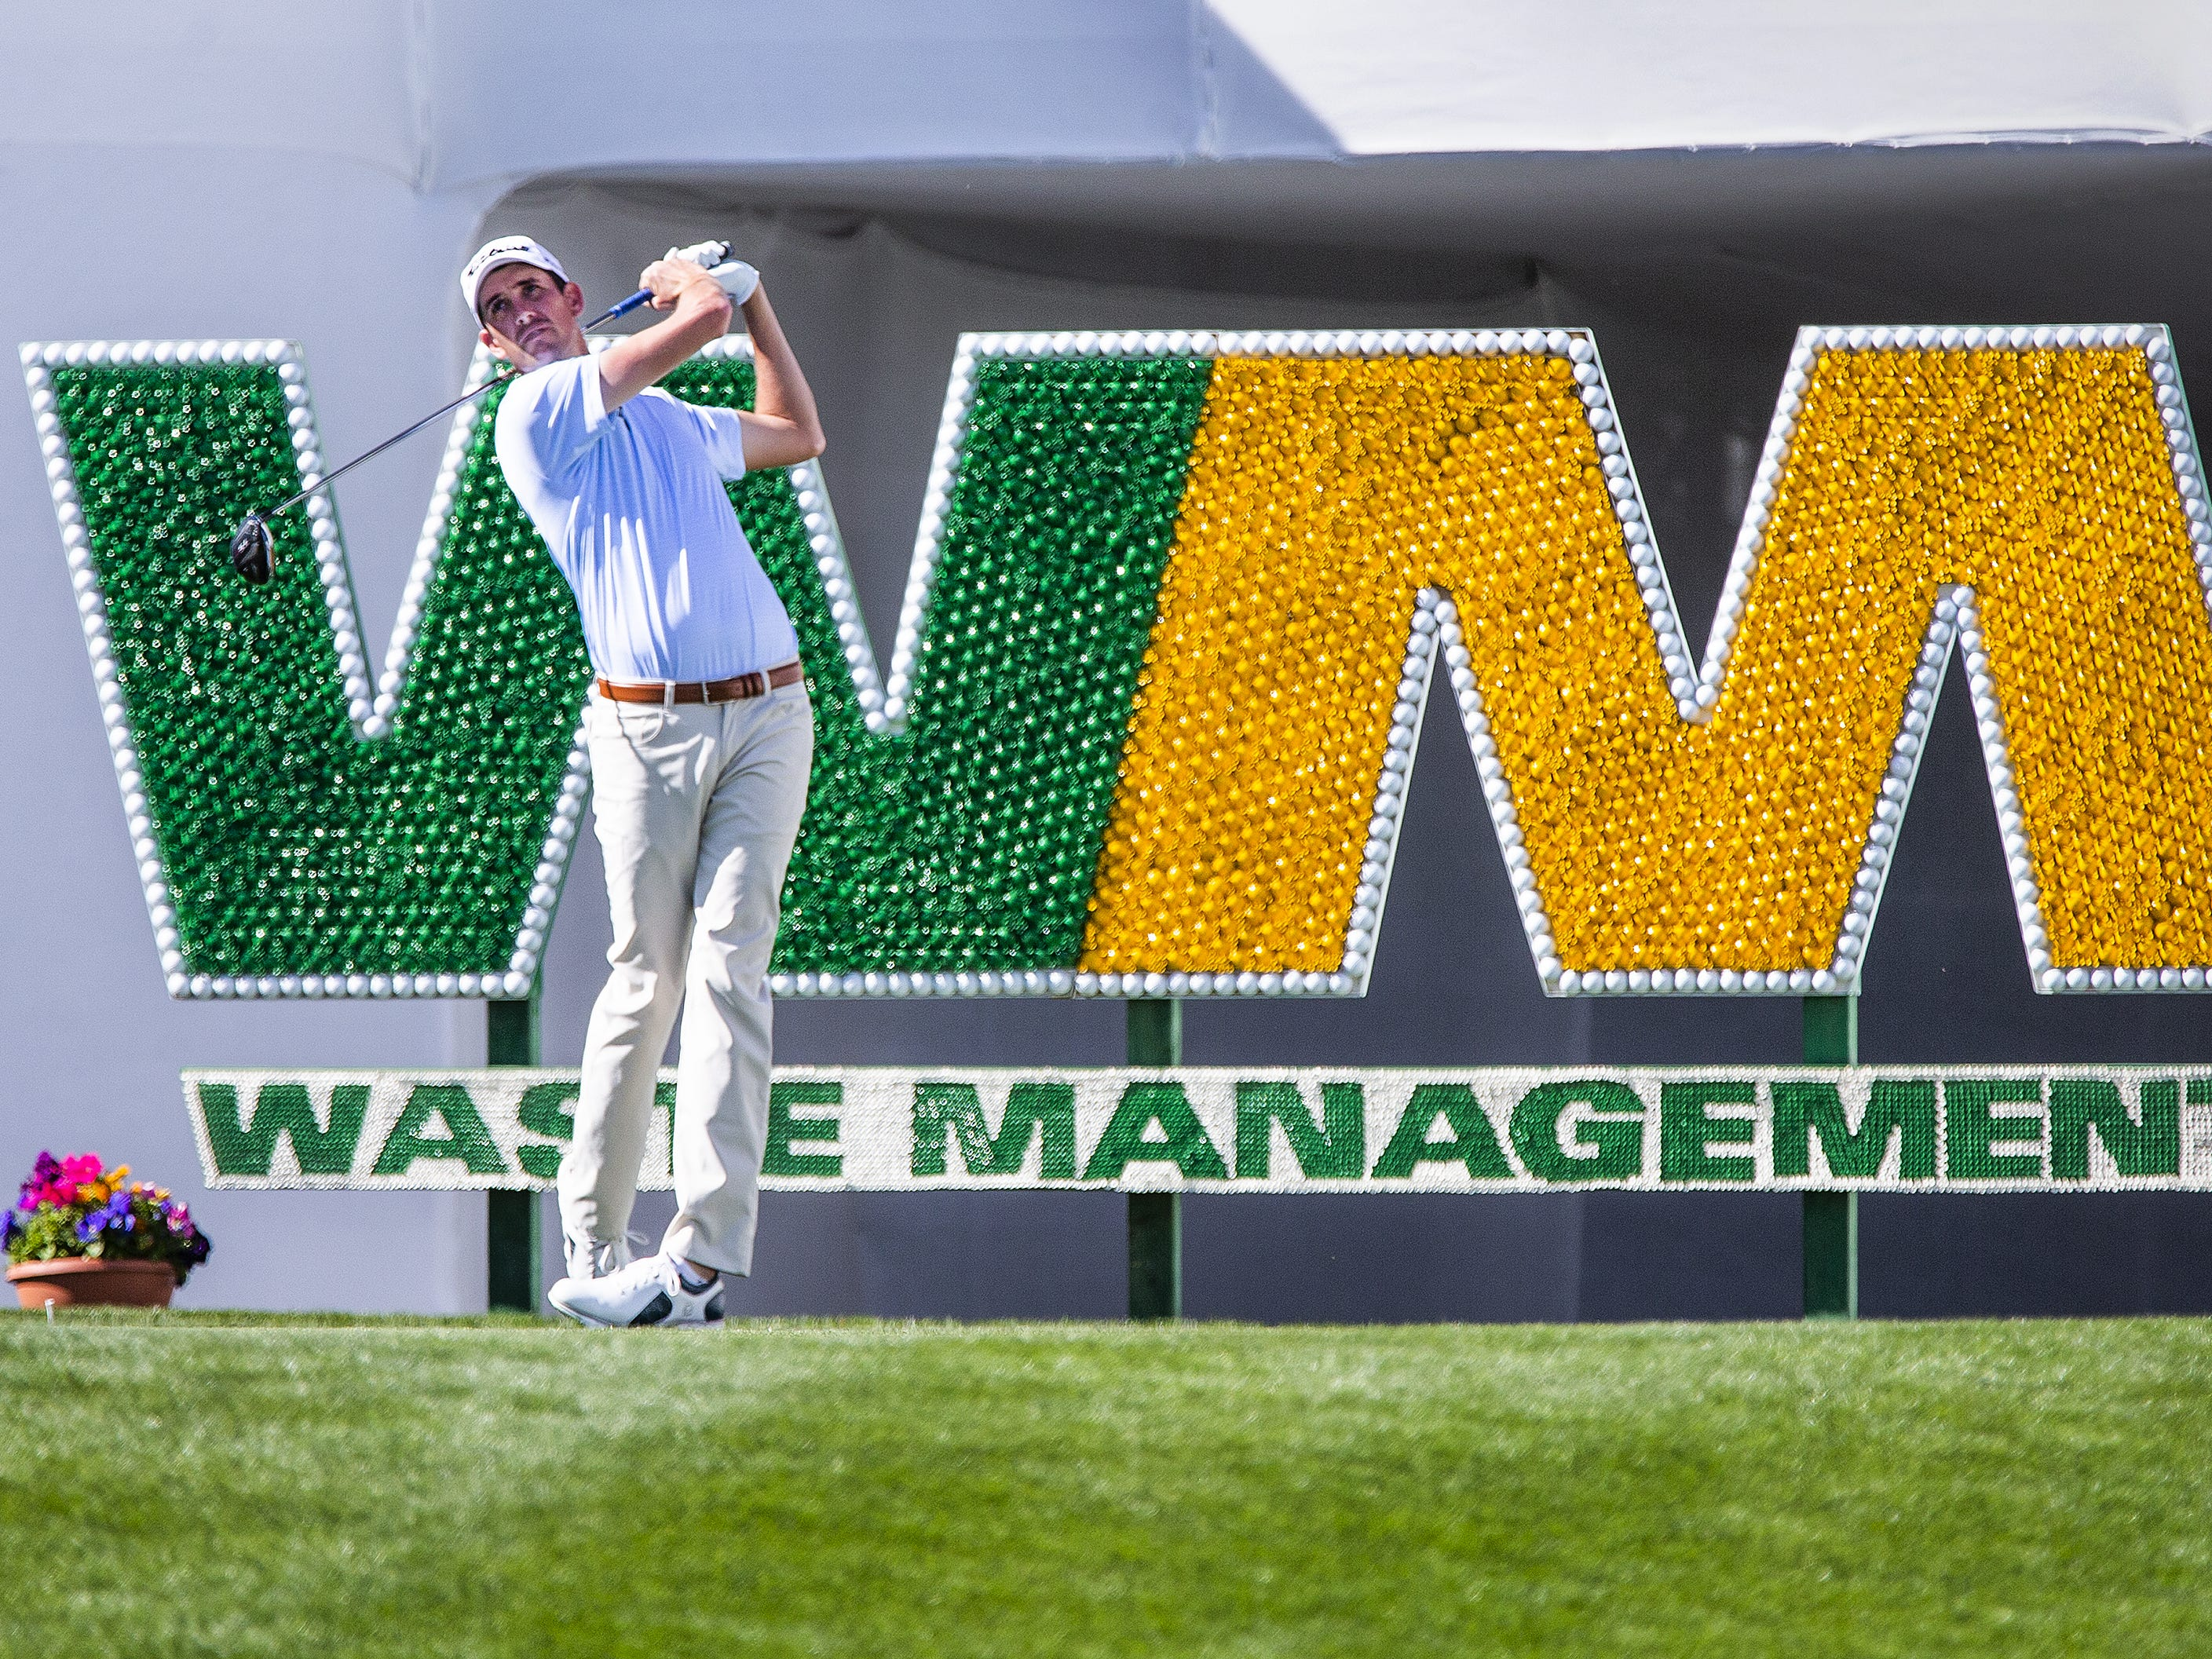 Chesson Hadley tees off on the 17th hole during the Kadima.Ventures Pro-Am at the Waste Management Phoenix Open at the TPC Scottsdale, Monday, January 28, 2019.